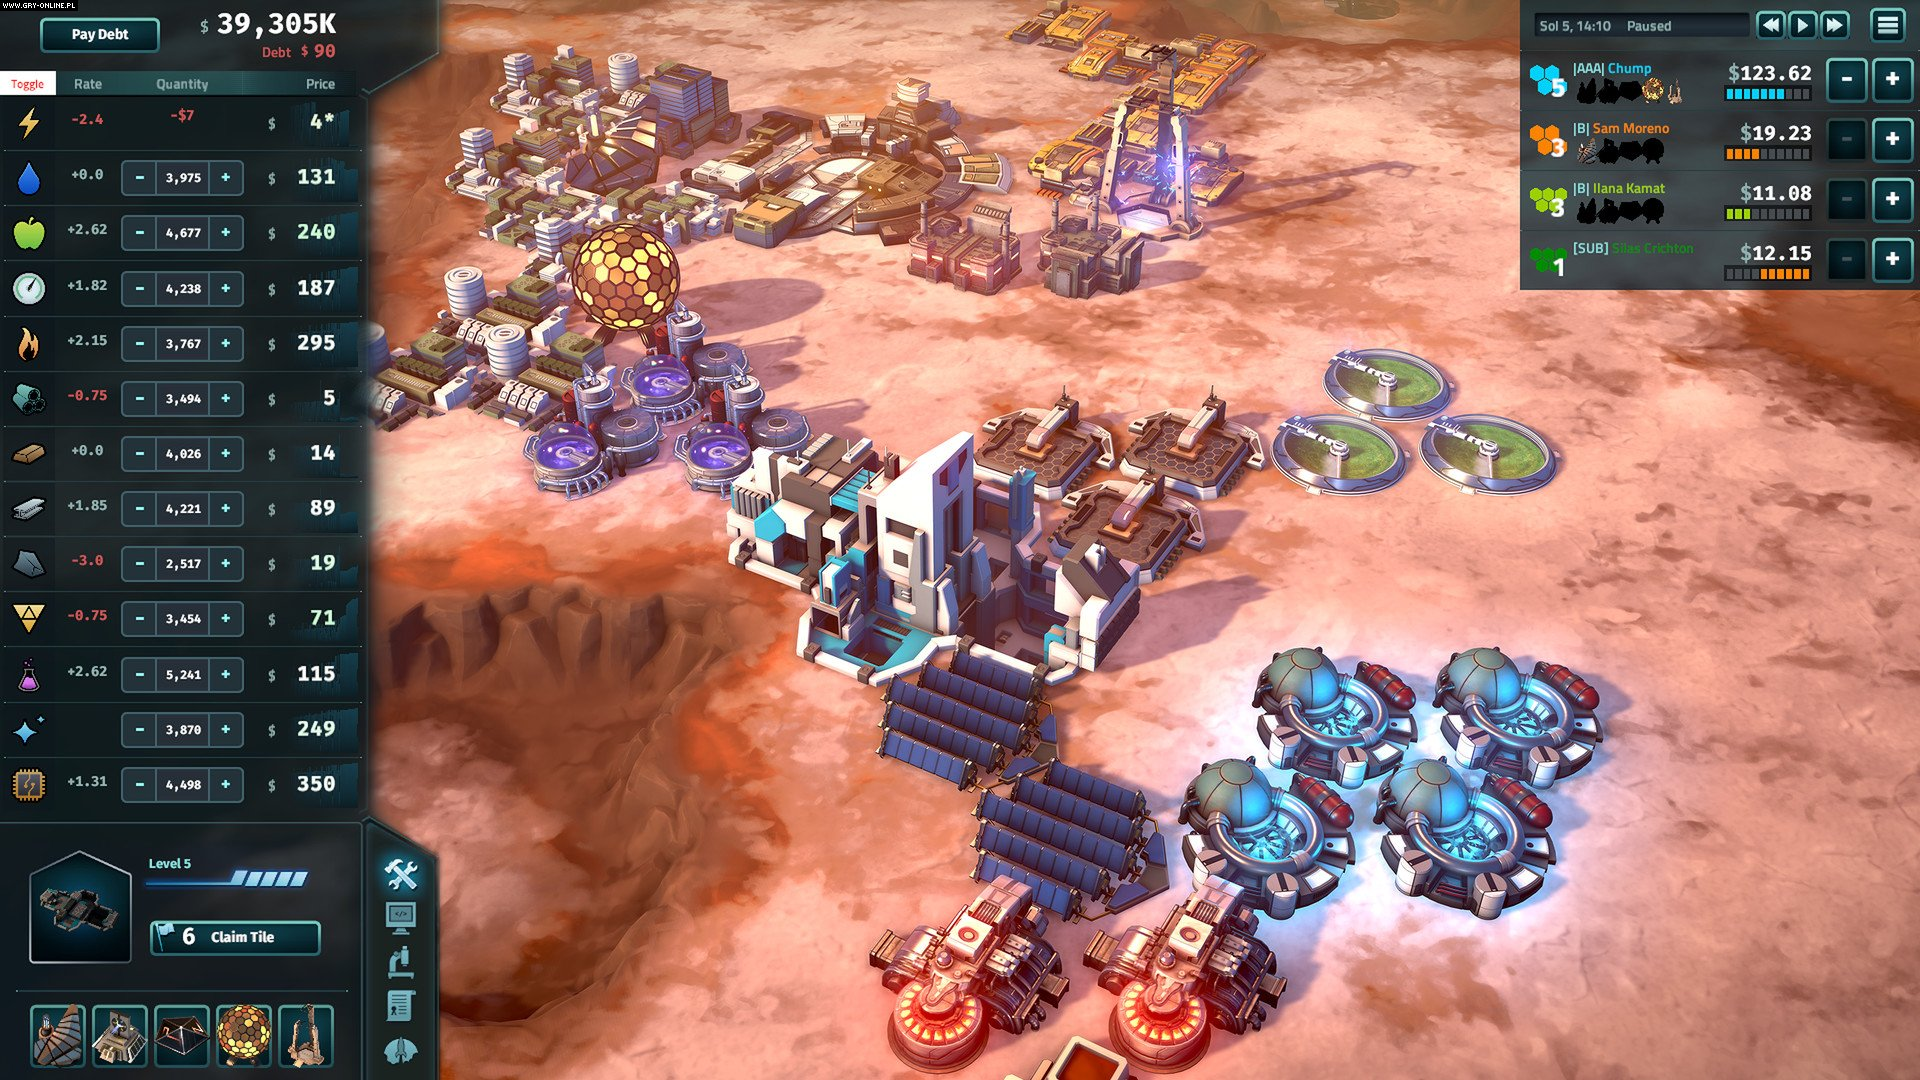 Offworld Trading Company PC Gry Screen 7/9, Mohawk Games, Stardock Corporation